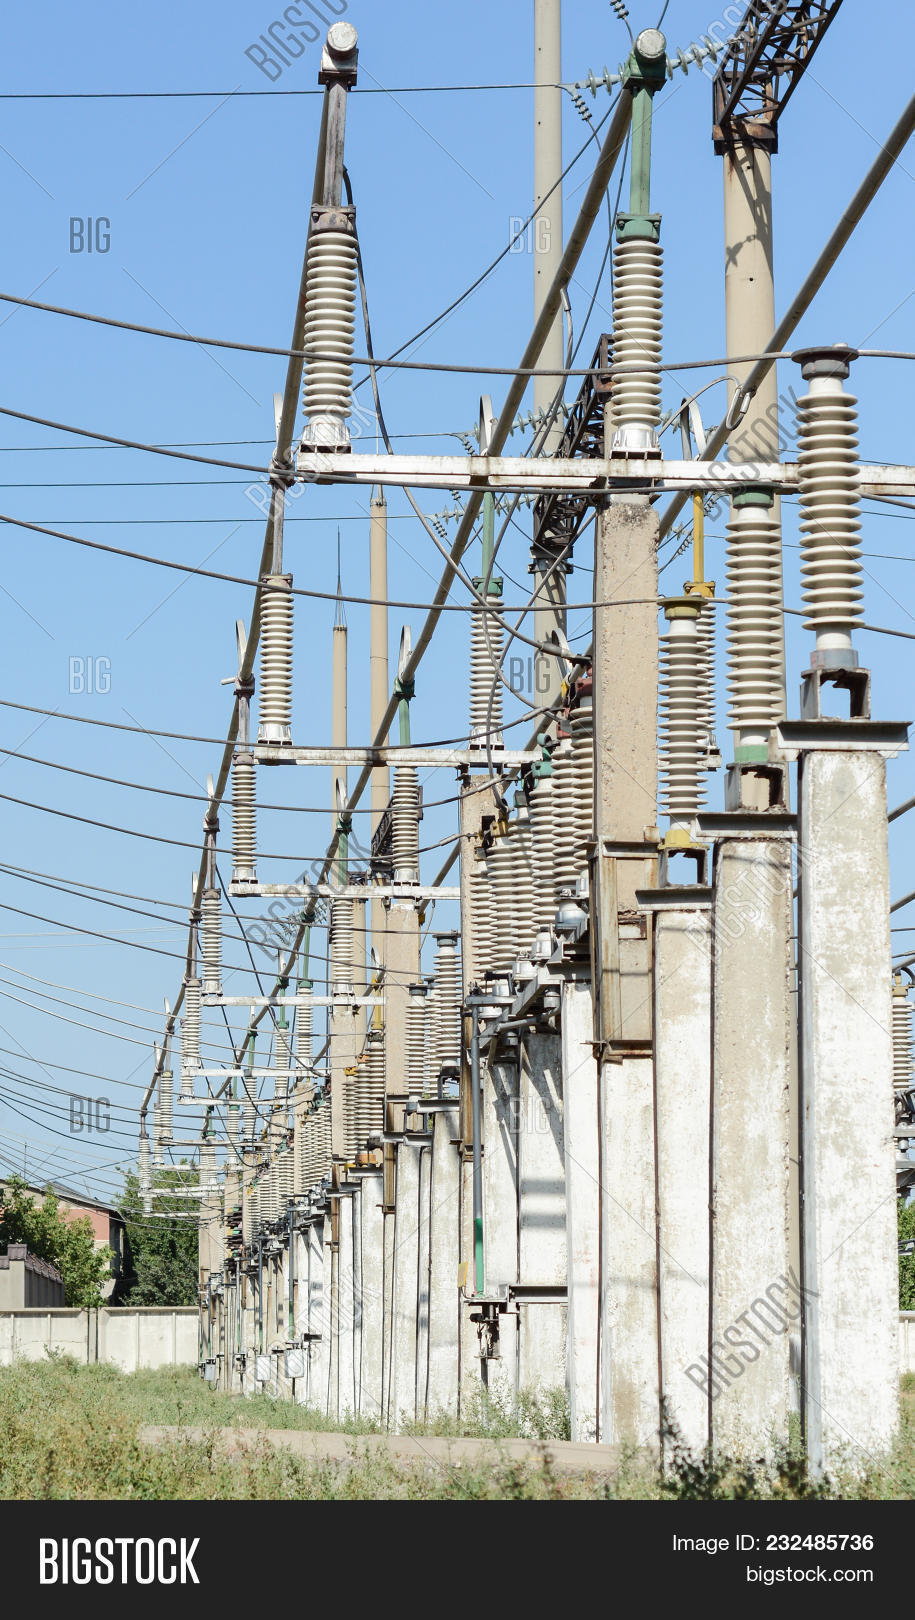 Electric Substation Image Photo Free Trial Bigstock High Voltage Wiring And Wires With Insulators